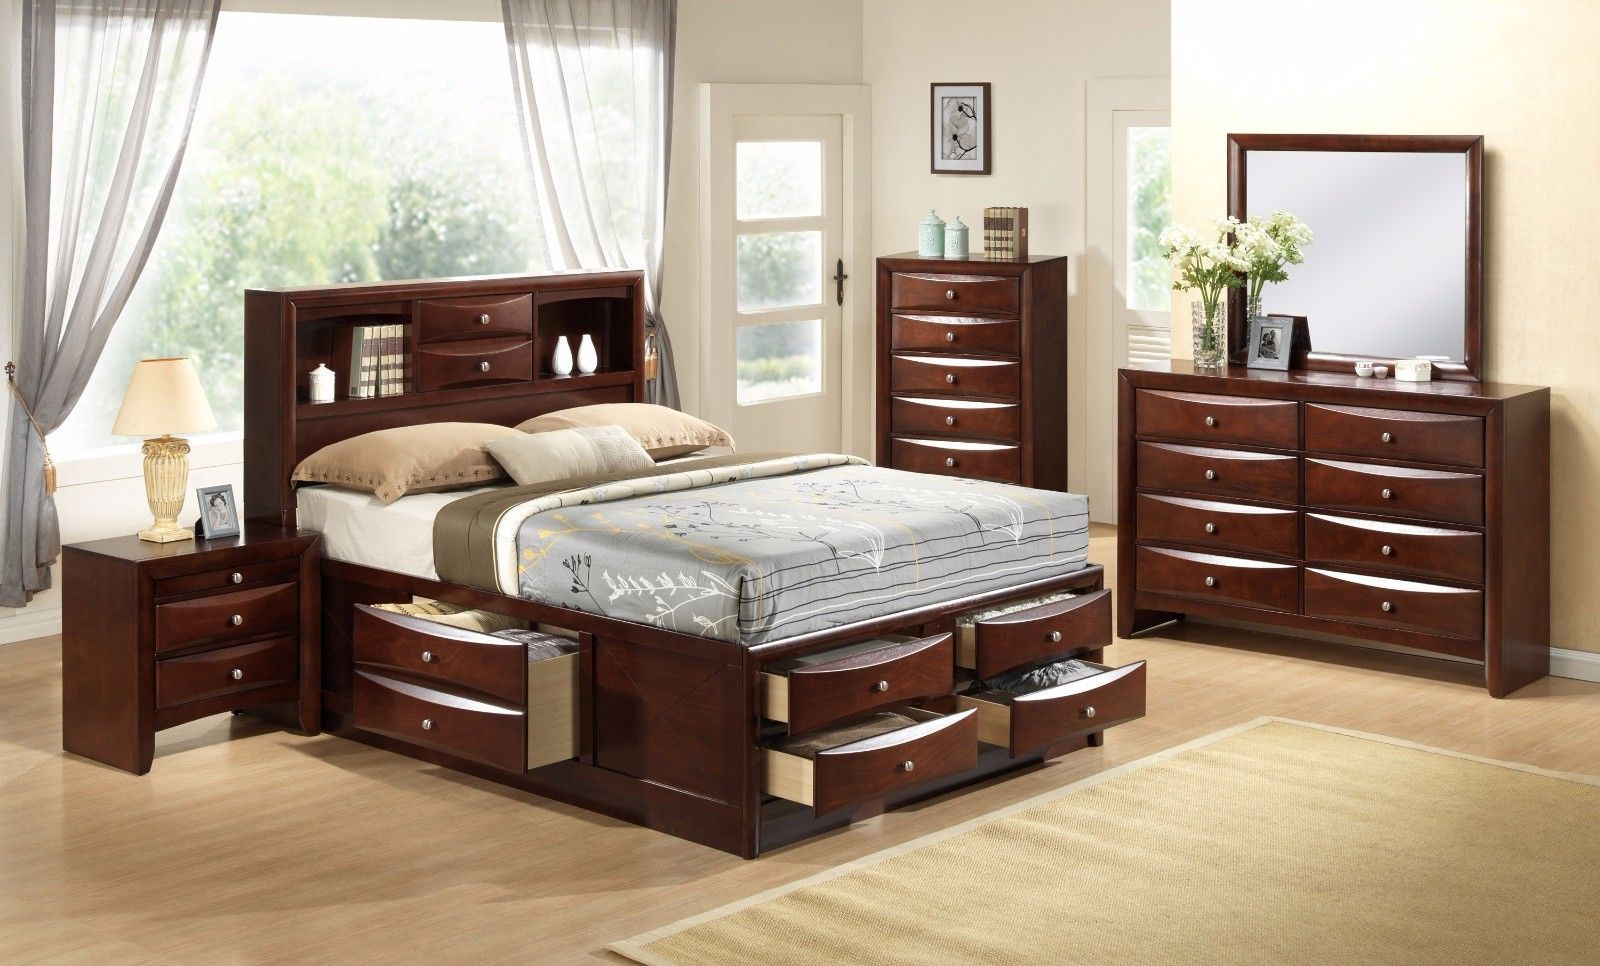 Crown Mark RB4255 Emily Storage Queen Bedroom Set Transitional 2 Night Stands